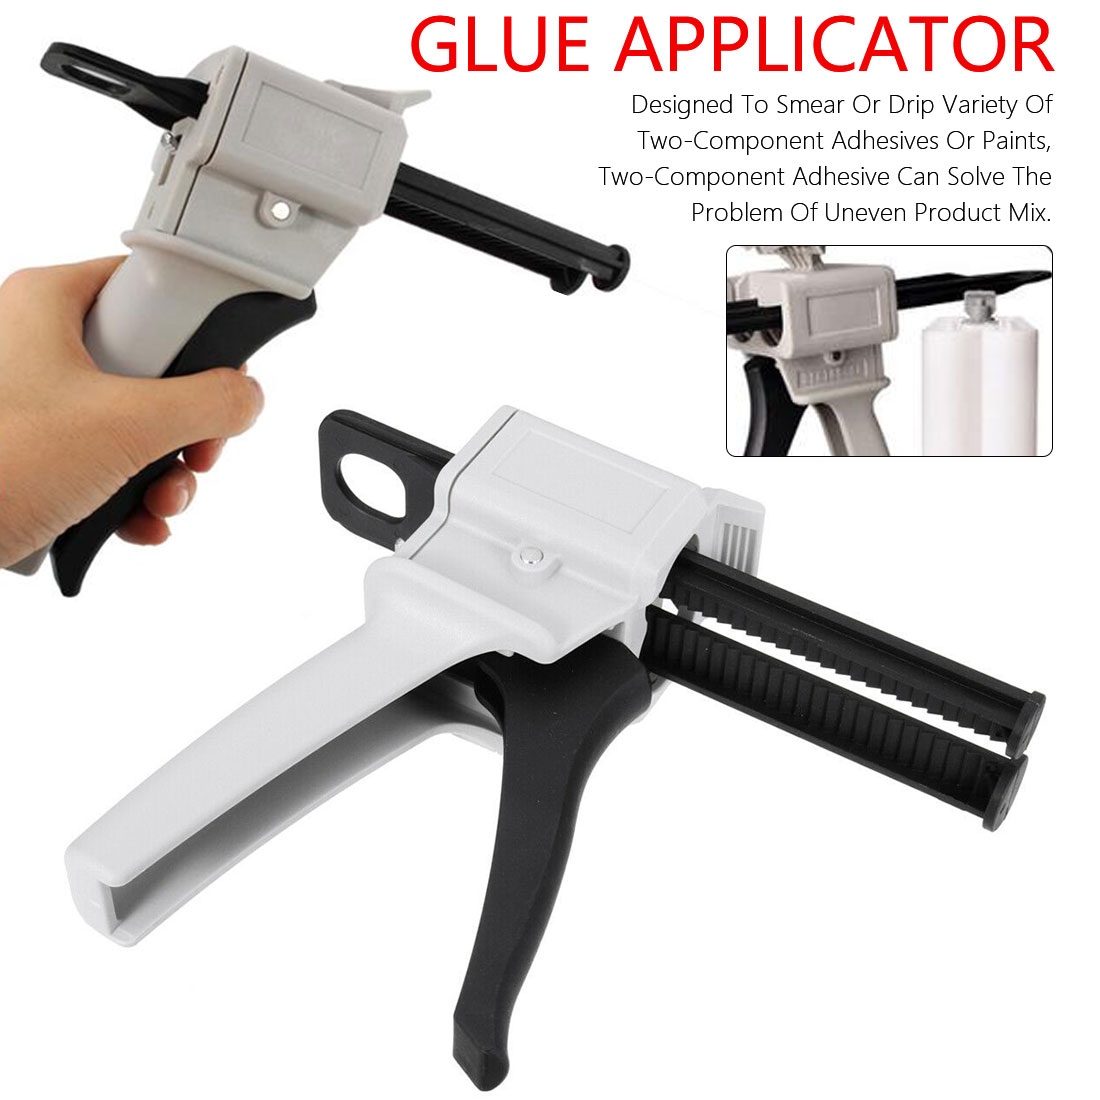 50ml Caulking Gun Hand Tool AB Epoxy Glue Gun Applicator Glue Adhensive Cartridge Gun 1:2 1:1 AB Glue Manual Dispenser Glue Gun